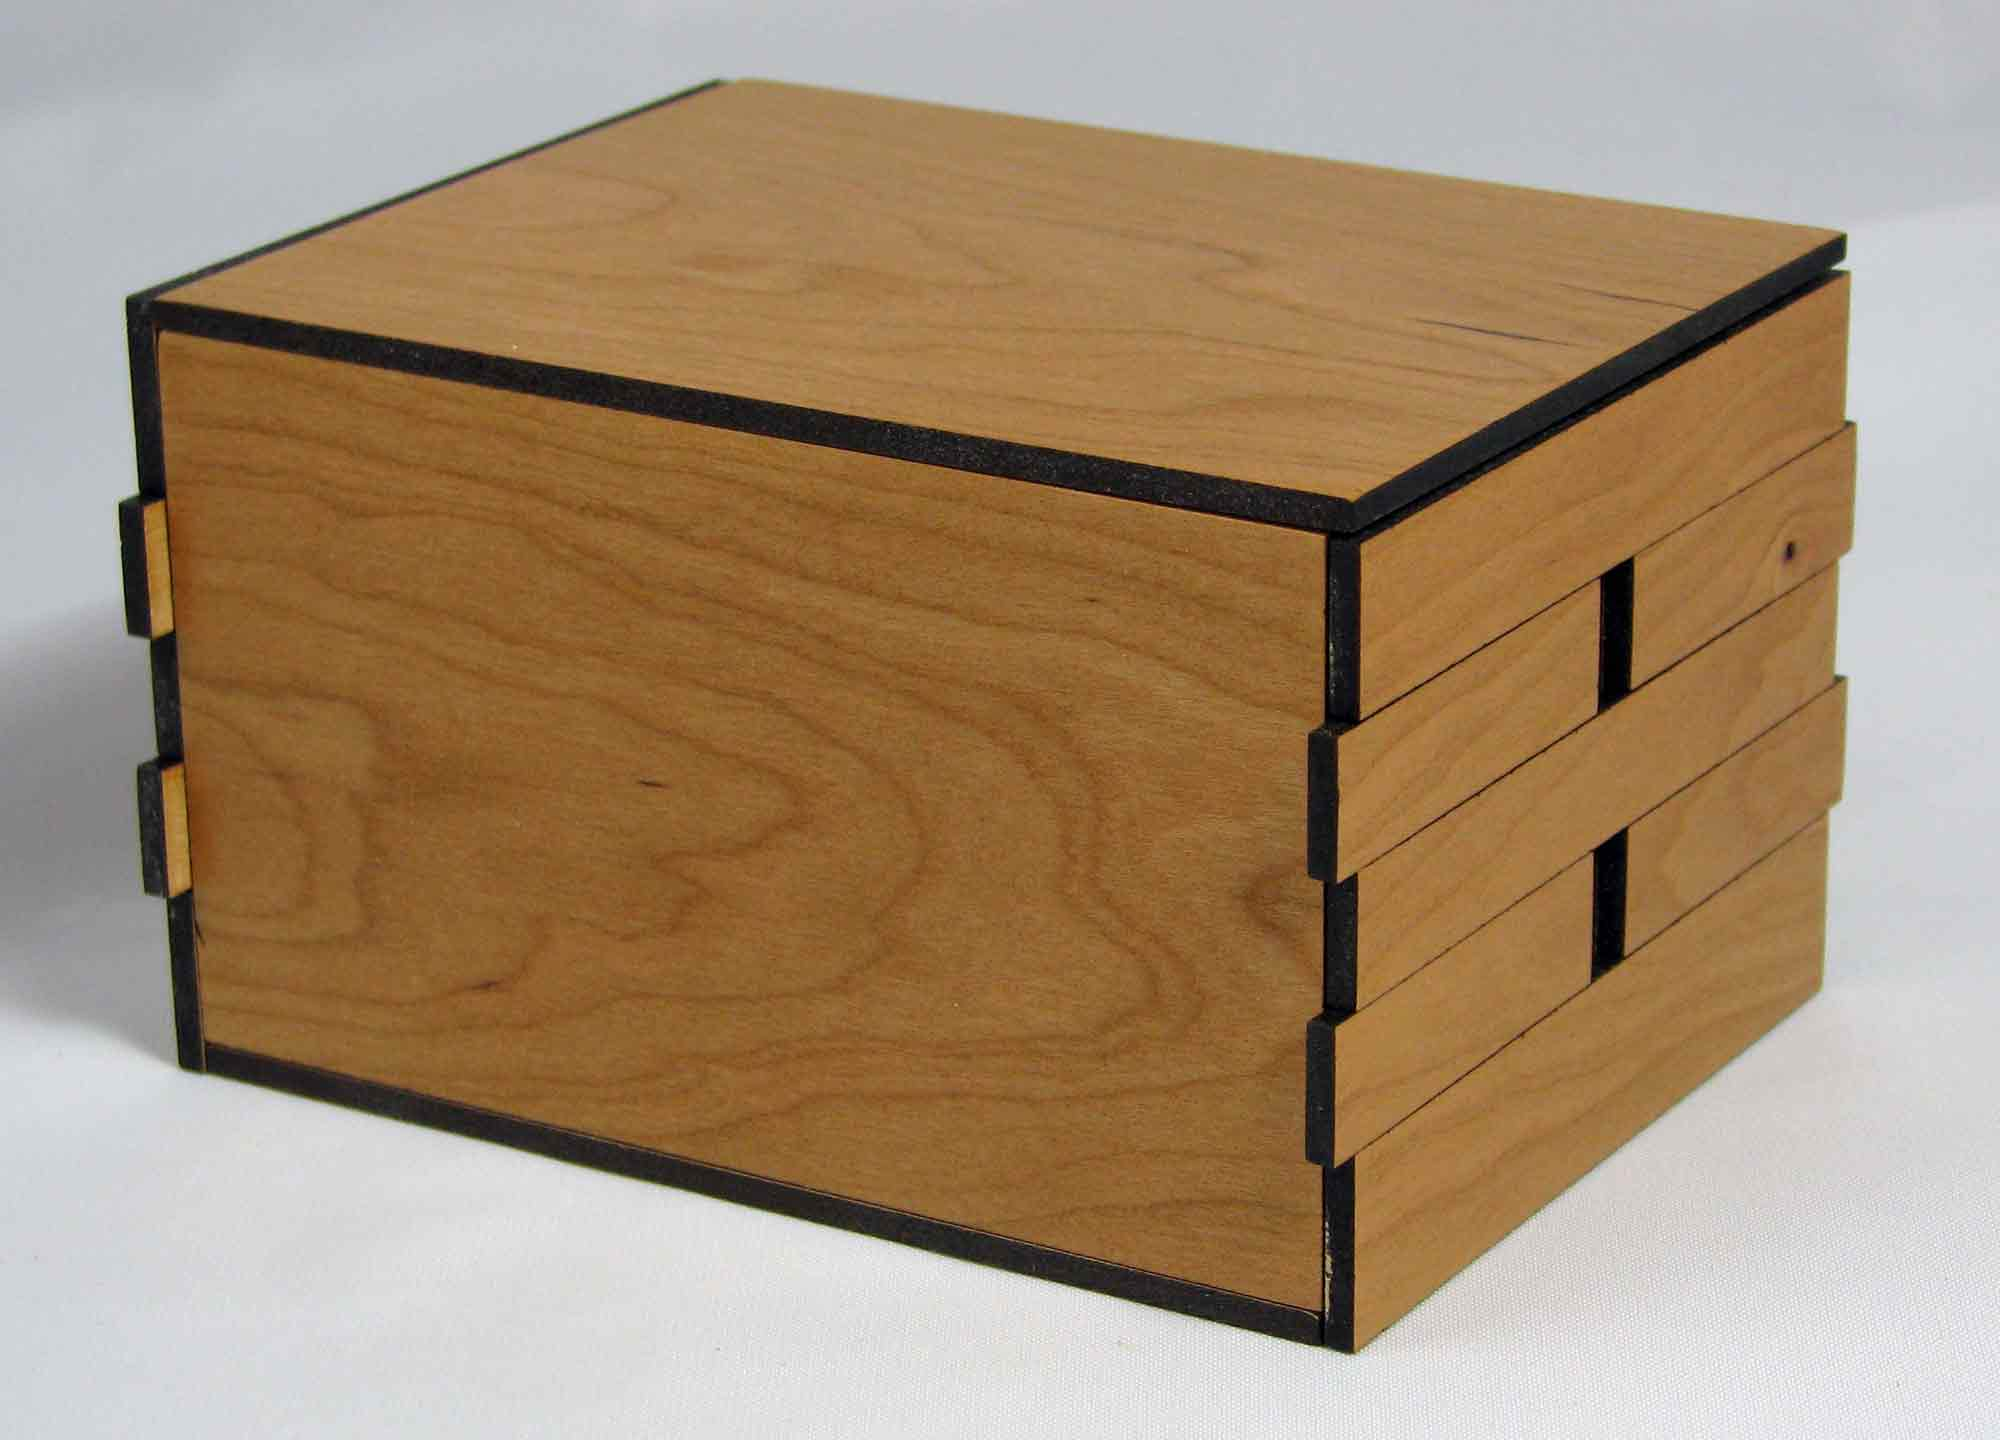 Woodworking wooden puzzle box plans PDF Free Download